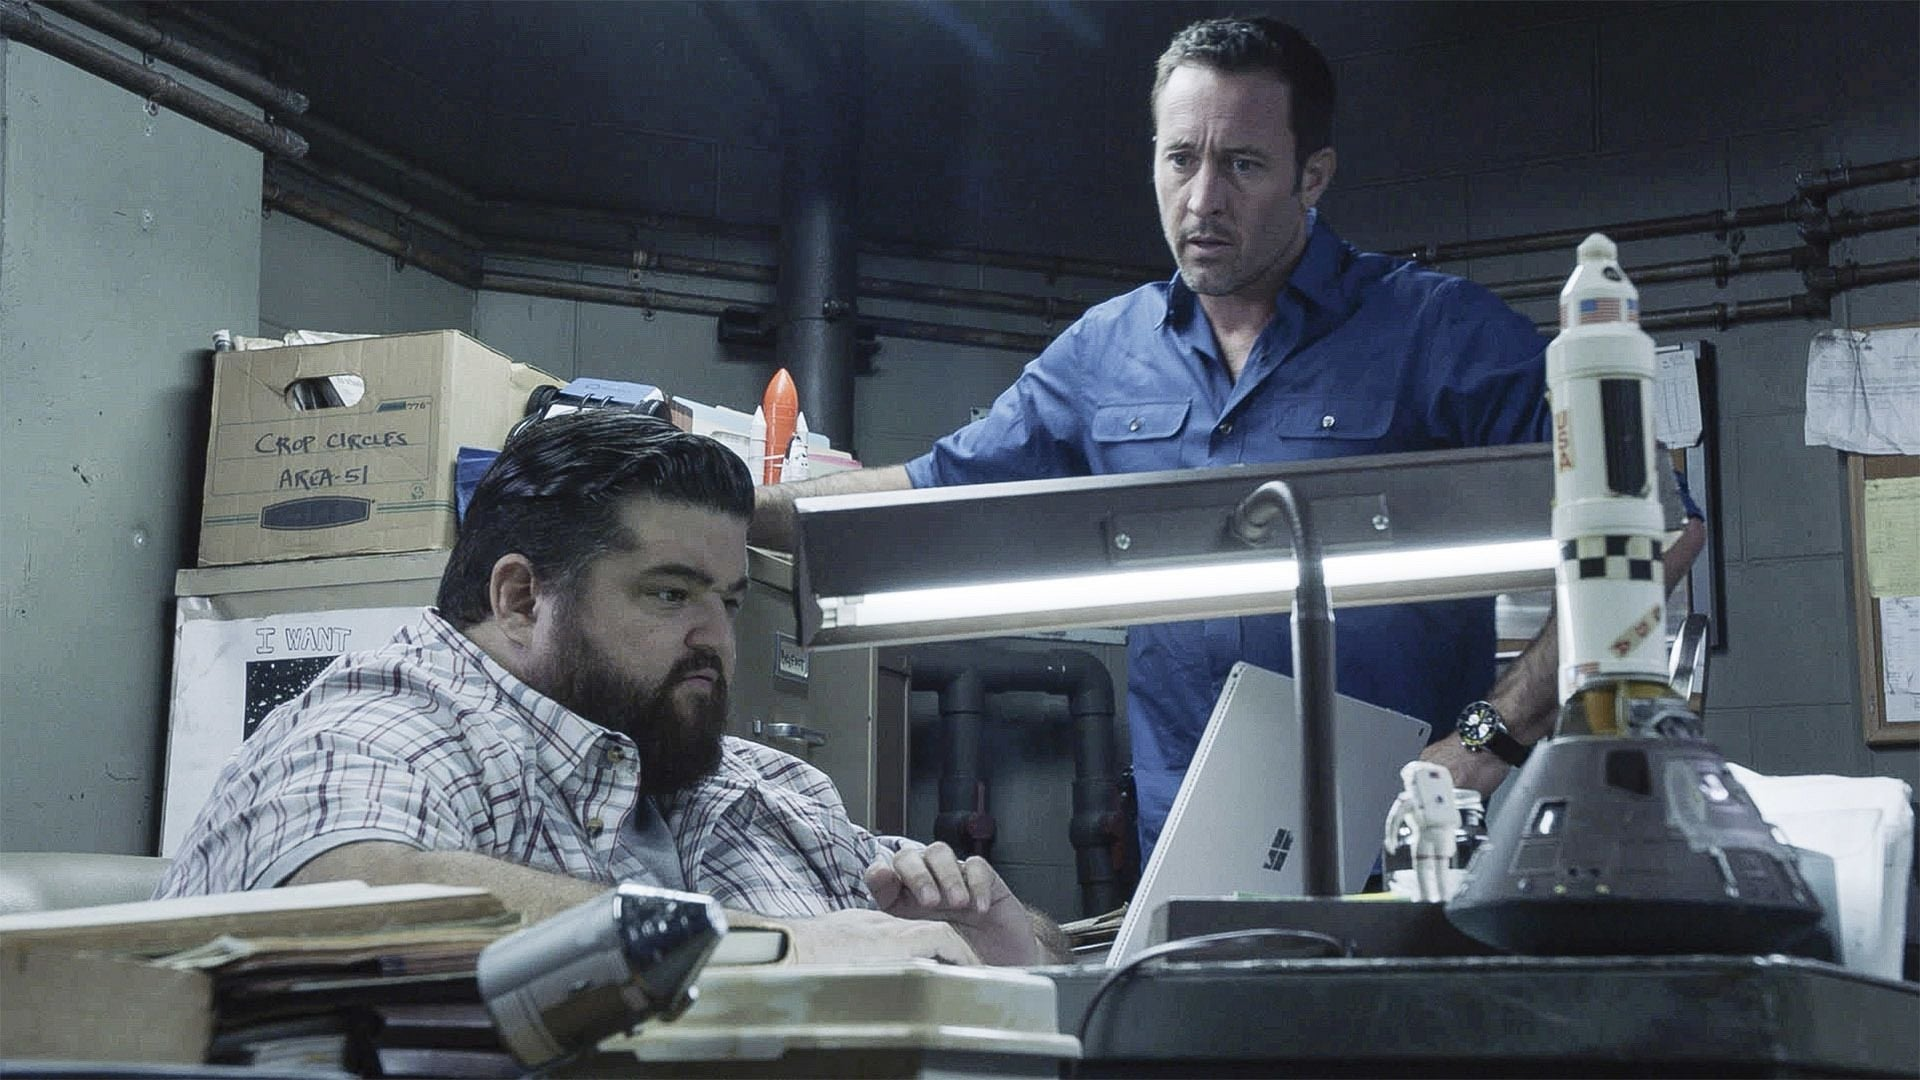 Hawaii Five-0 - Season 9 Episode 21 : He kama na ka pueo (Offspring of an Owl)